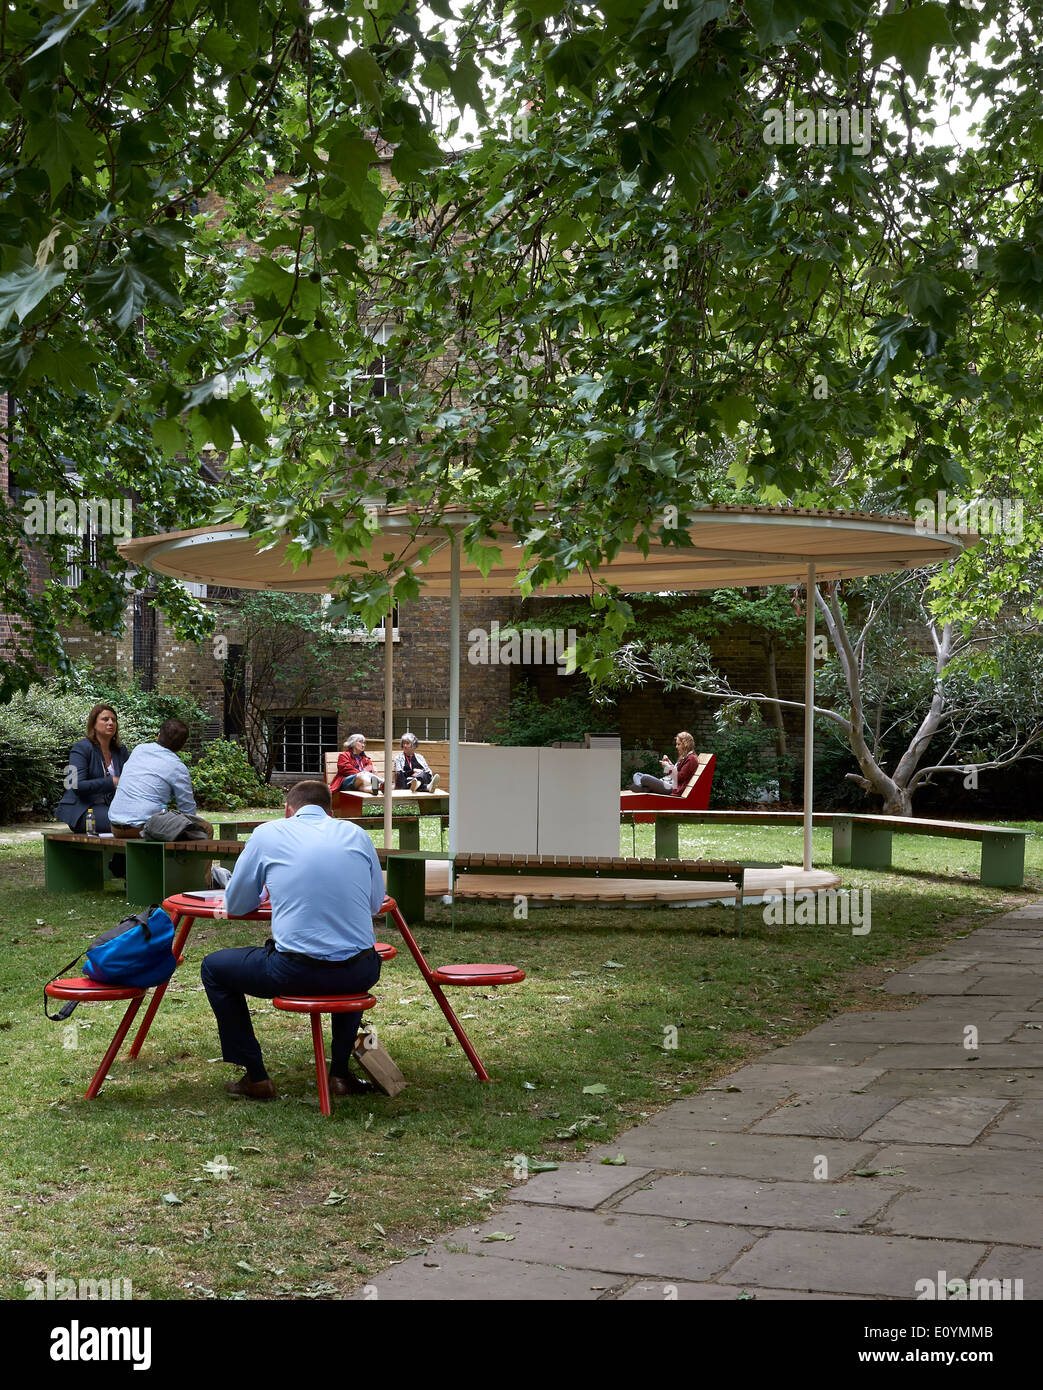 Street Furniture by Vestra with pavilion designed by Snohetta for Clerkenwell Design Week 2014, London - Stock Image